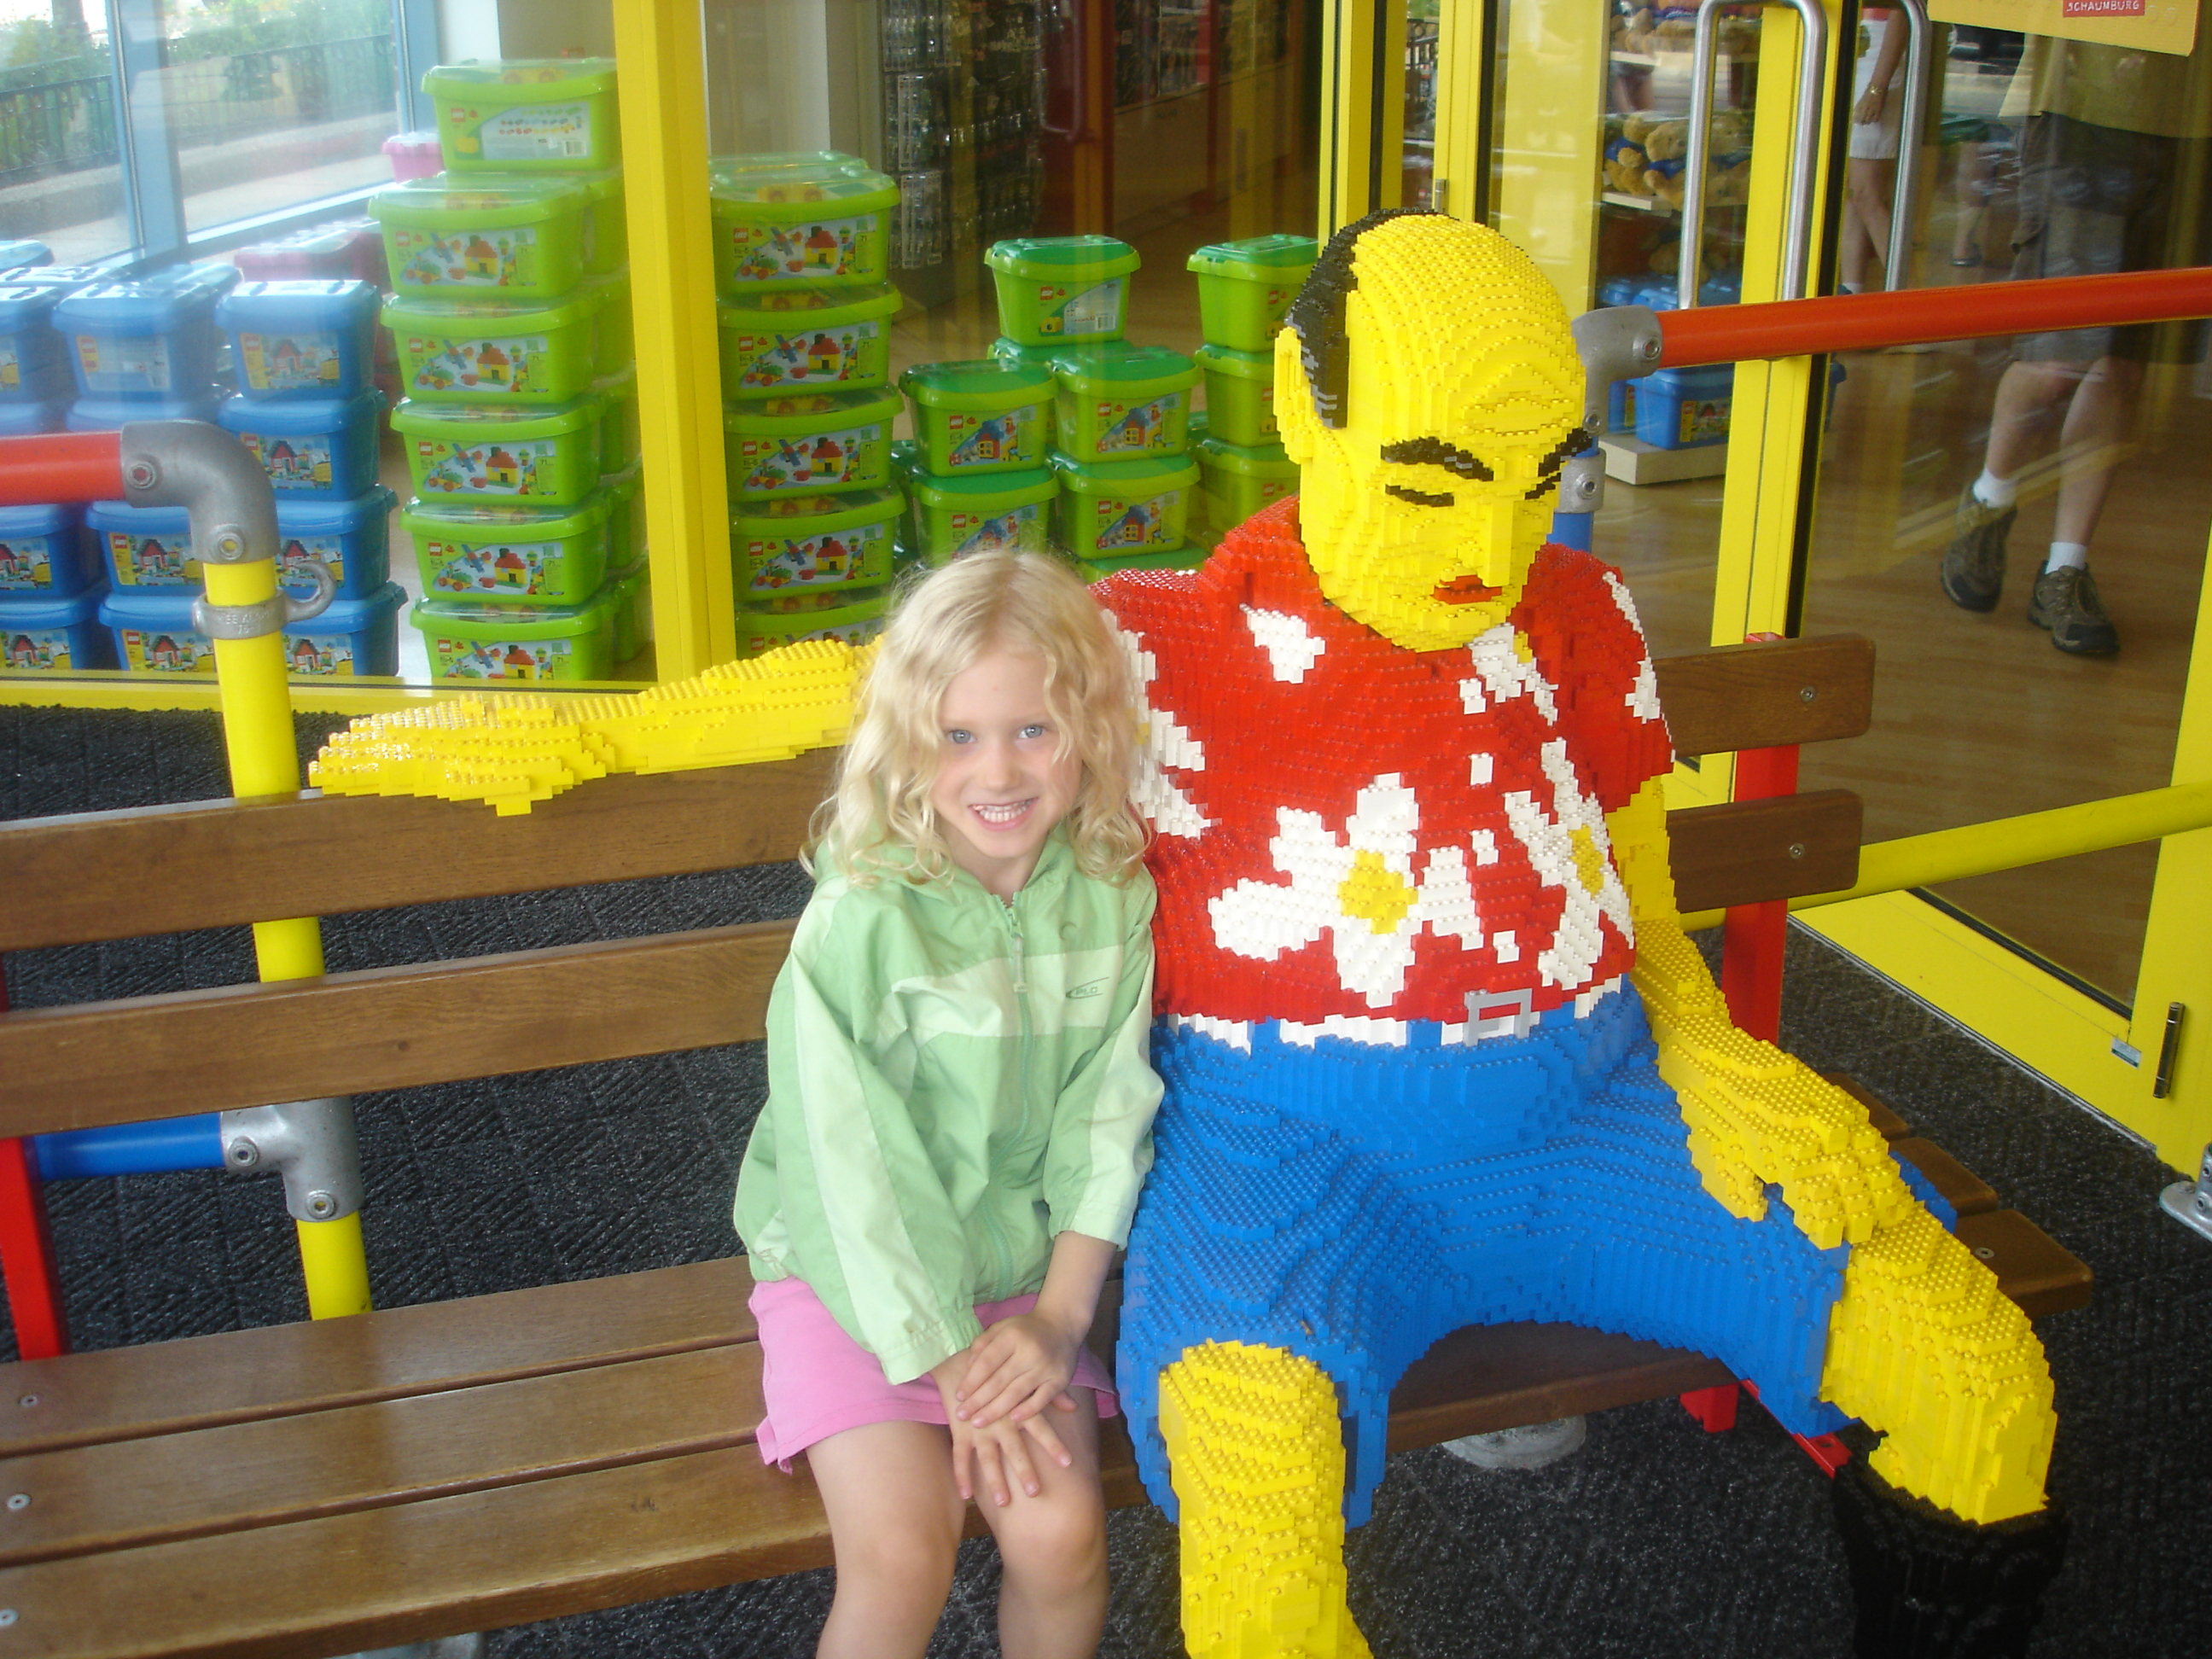 Hangin' with the locals at Legoland Discovery Center